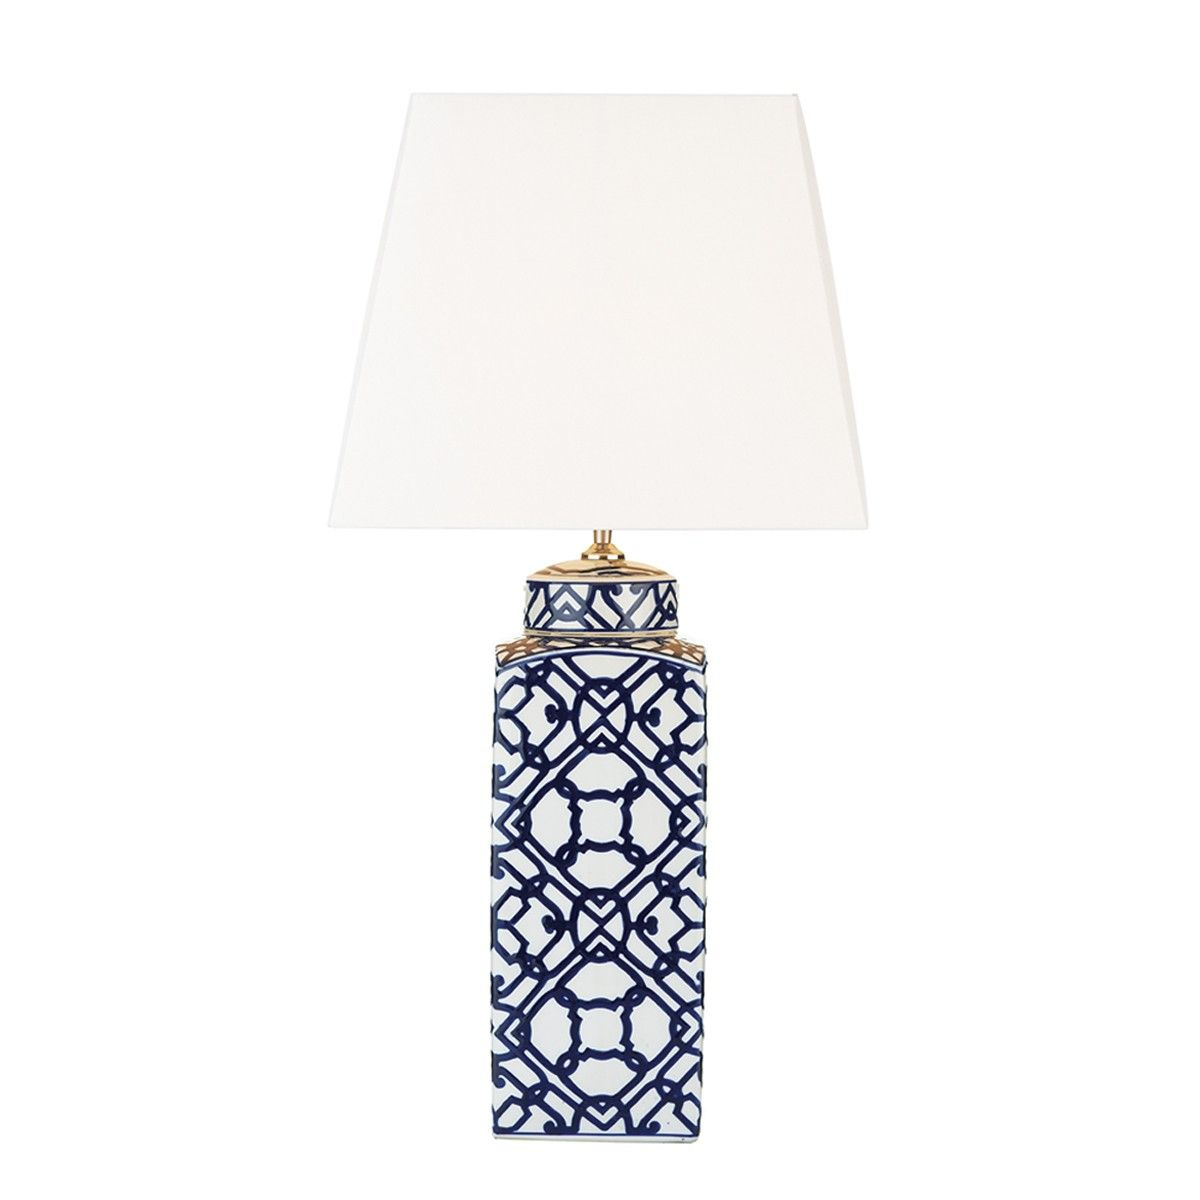 Mystic Table Lamp Blue White Base Only The Mystic 1lt Table Lamp